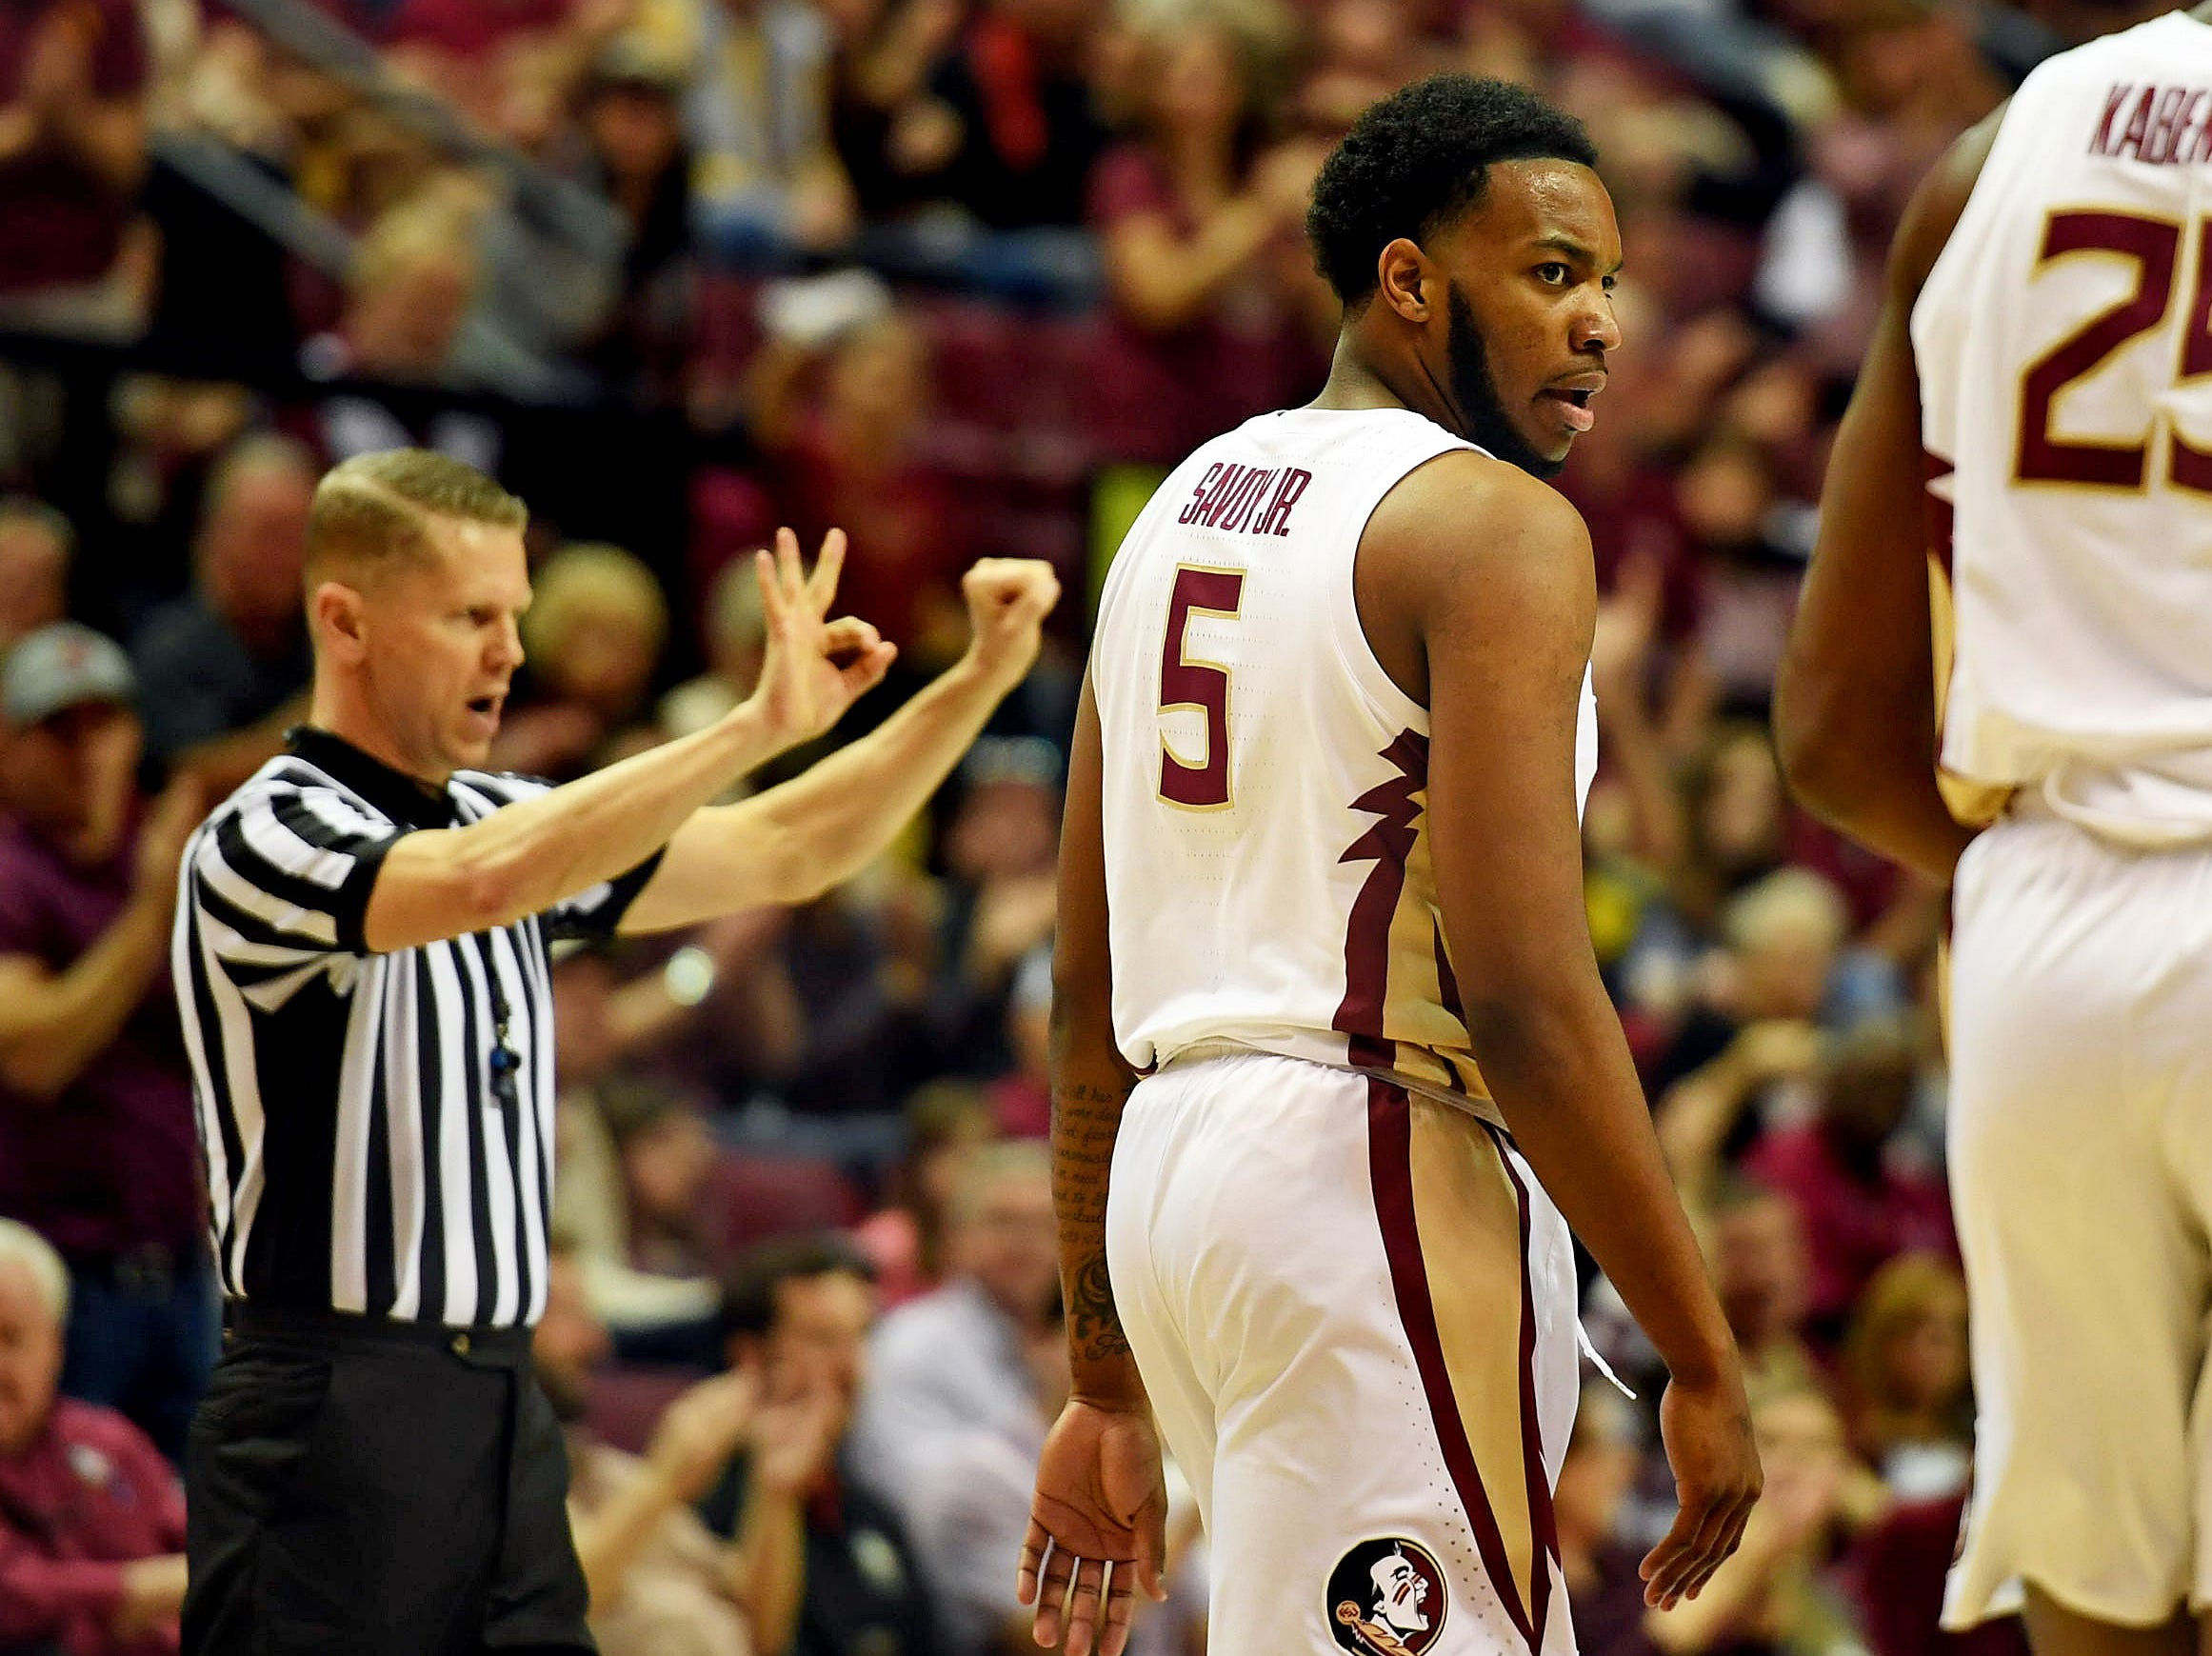 Feb 9, 2019; Tallahassee, FL, USA; Florida State Seminoles guard PJ Savoy (5) reacts after a foul against the Louisville Cardinals during the first half at Donald L. Tucker Center. Mandatory Credit: Melina Myers-USA TODAY Sports